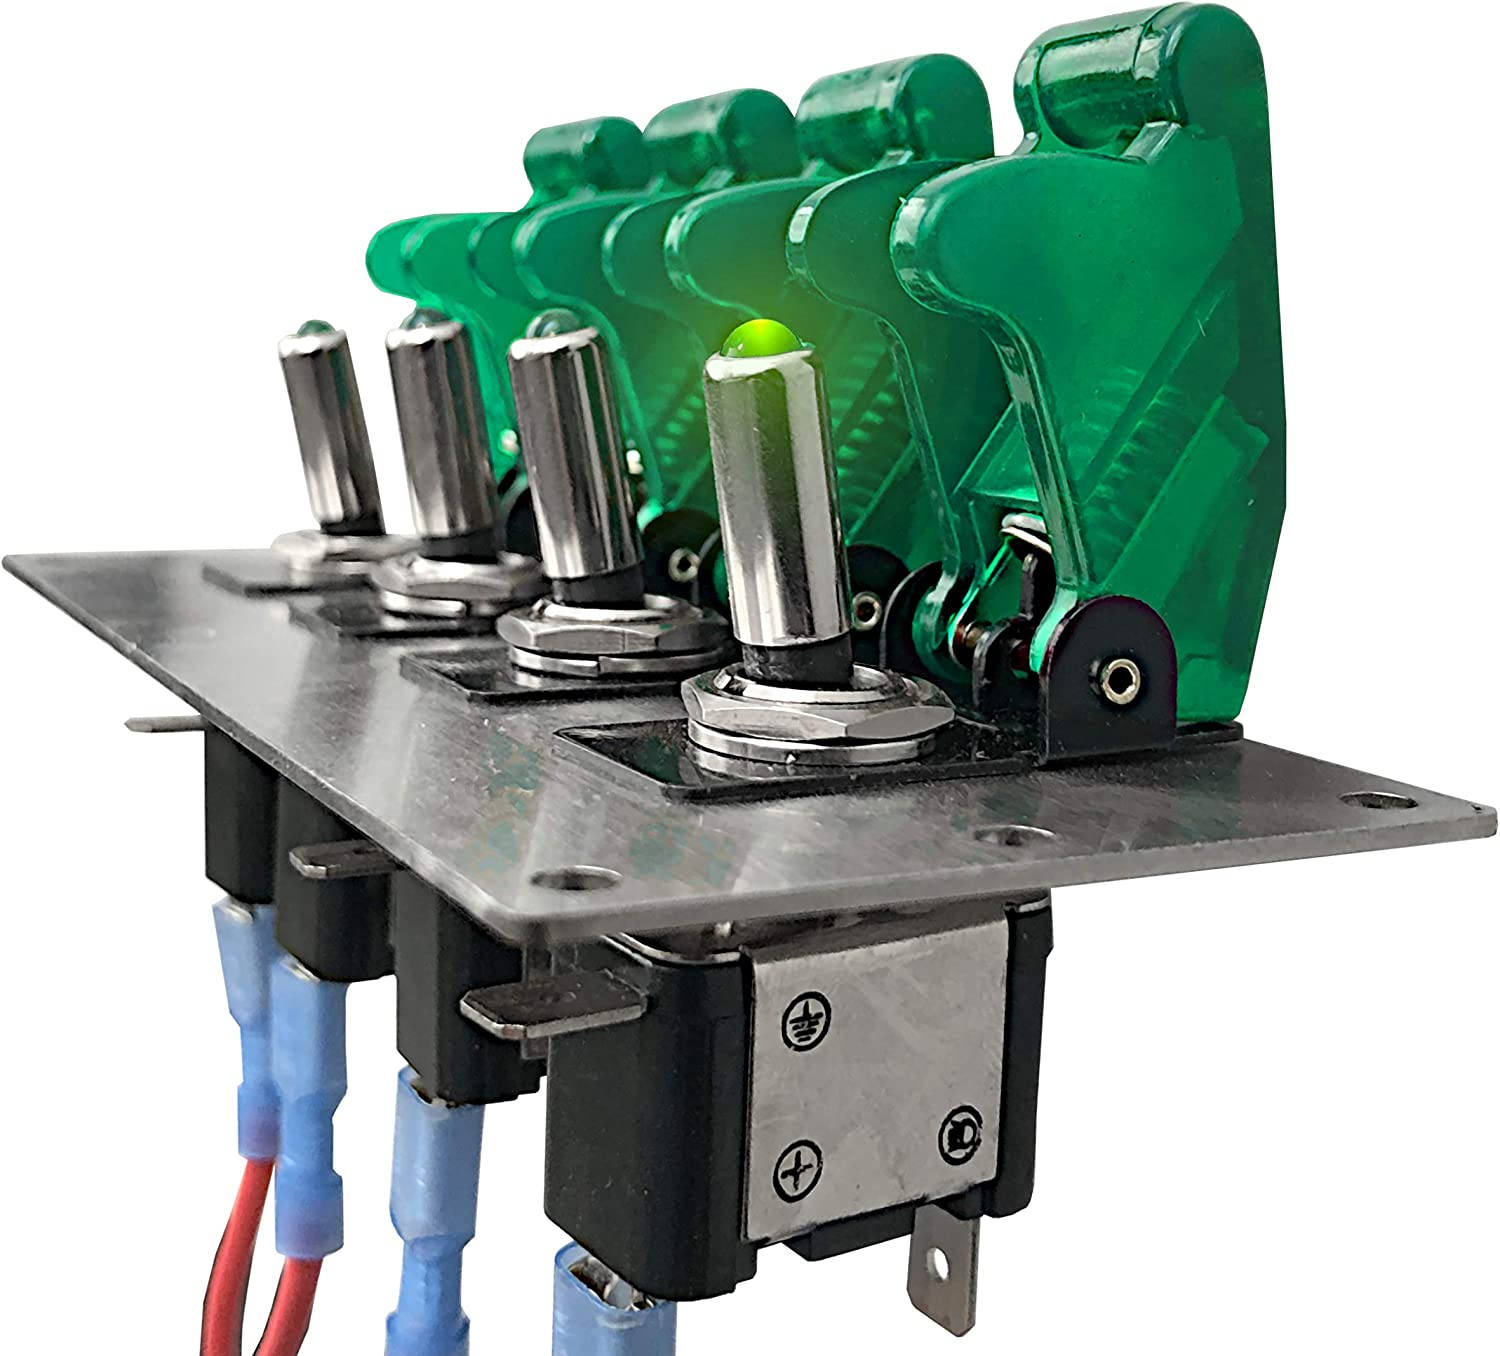 MGI SpeedWare 4 LED Toggle Switch Panel 12vDC with Safety Covers Green